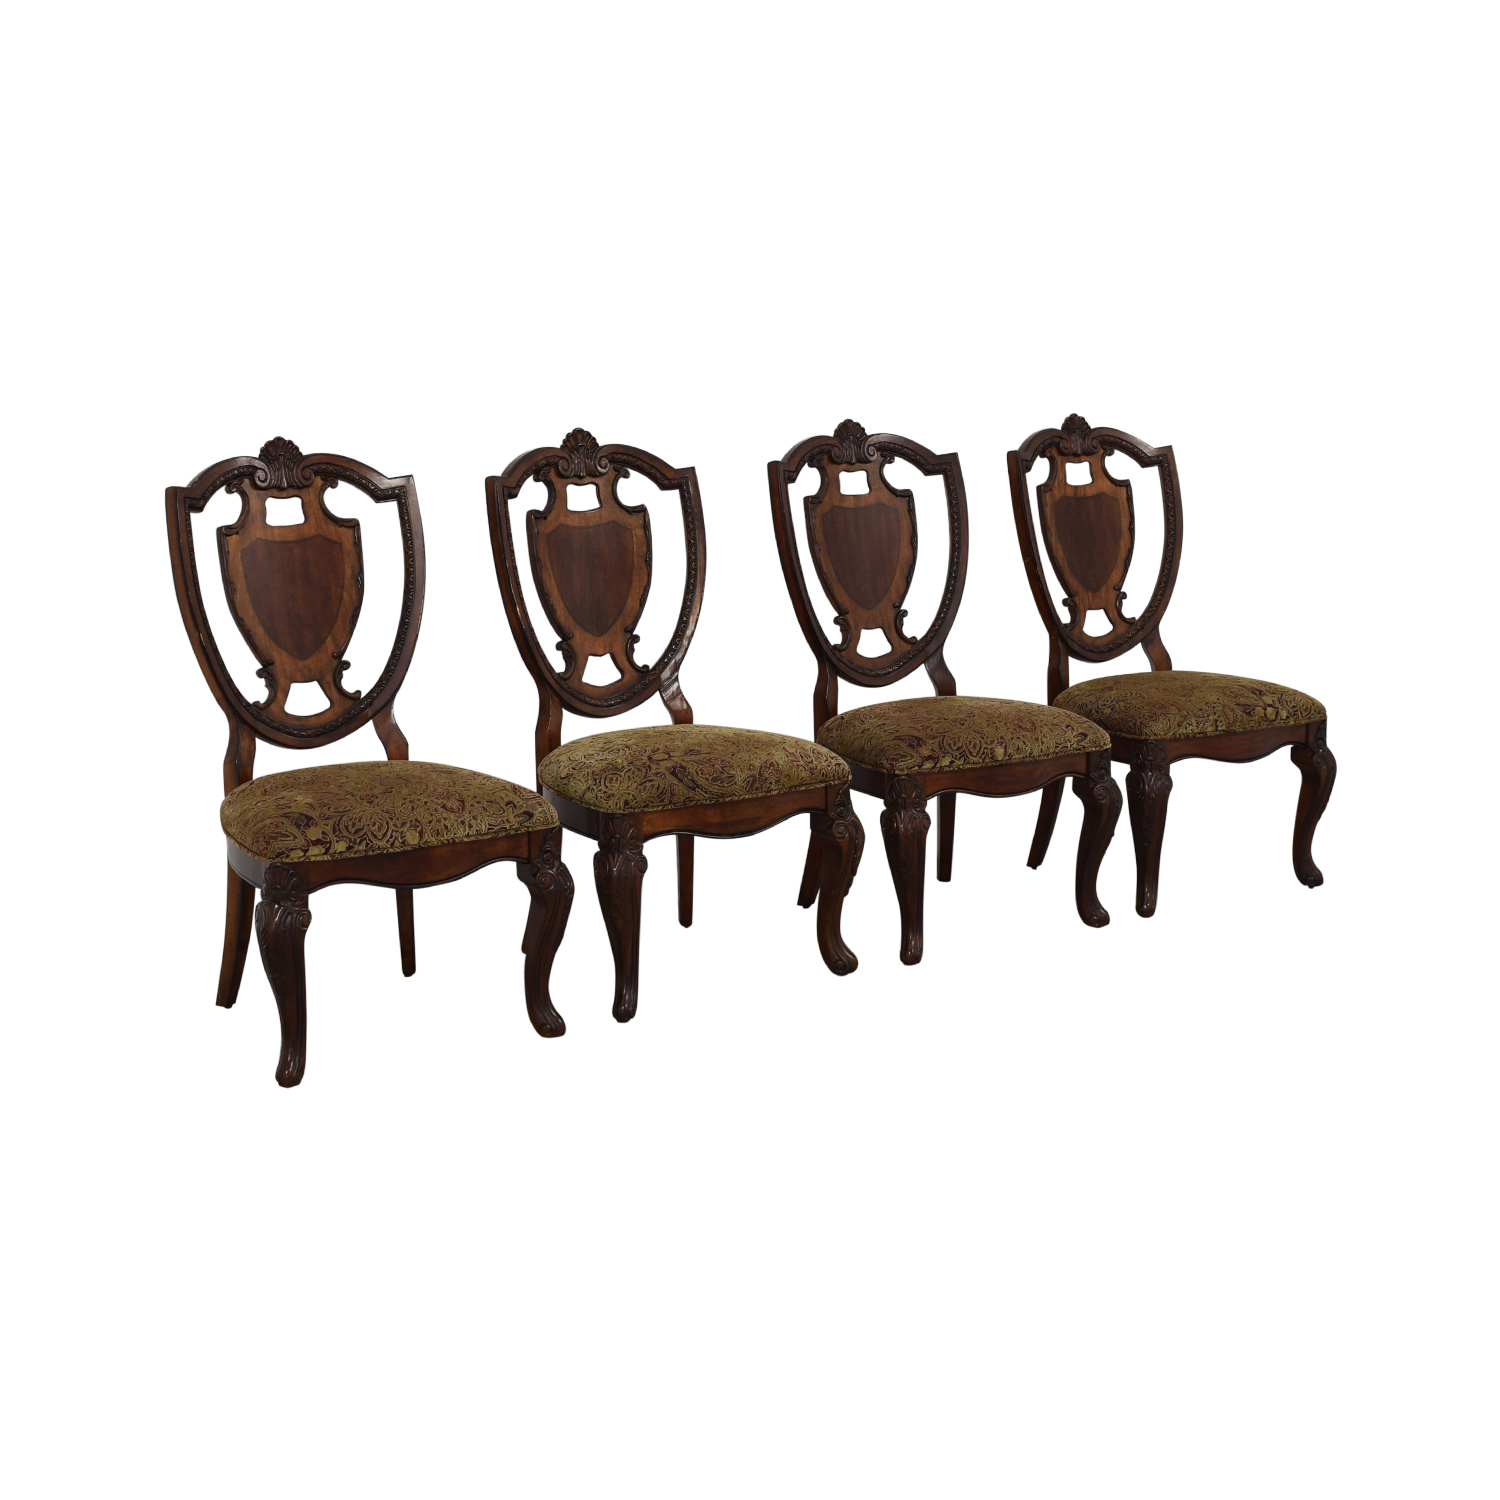 Macy's Macy's Upholstered Seat Dining Chairs brown